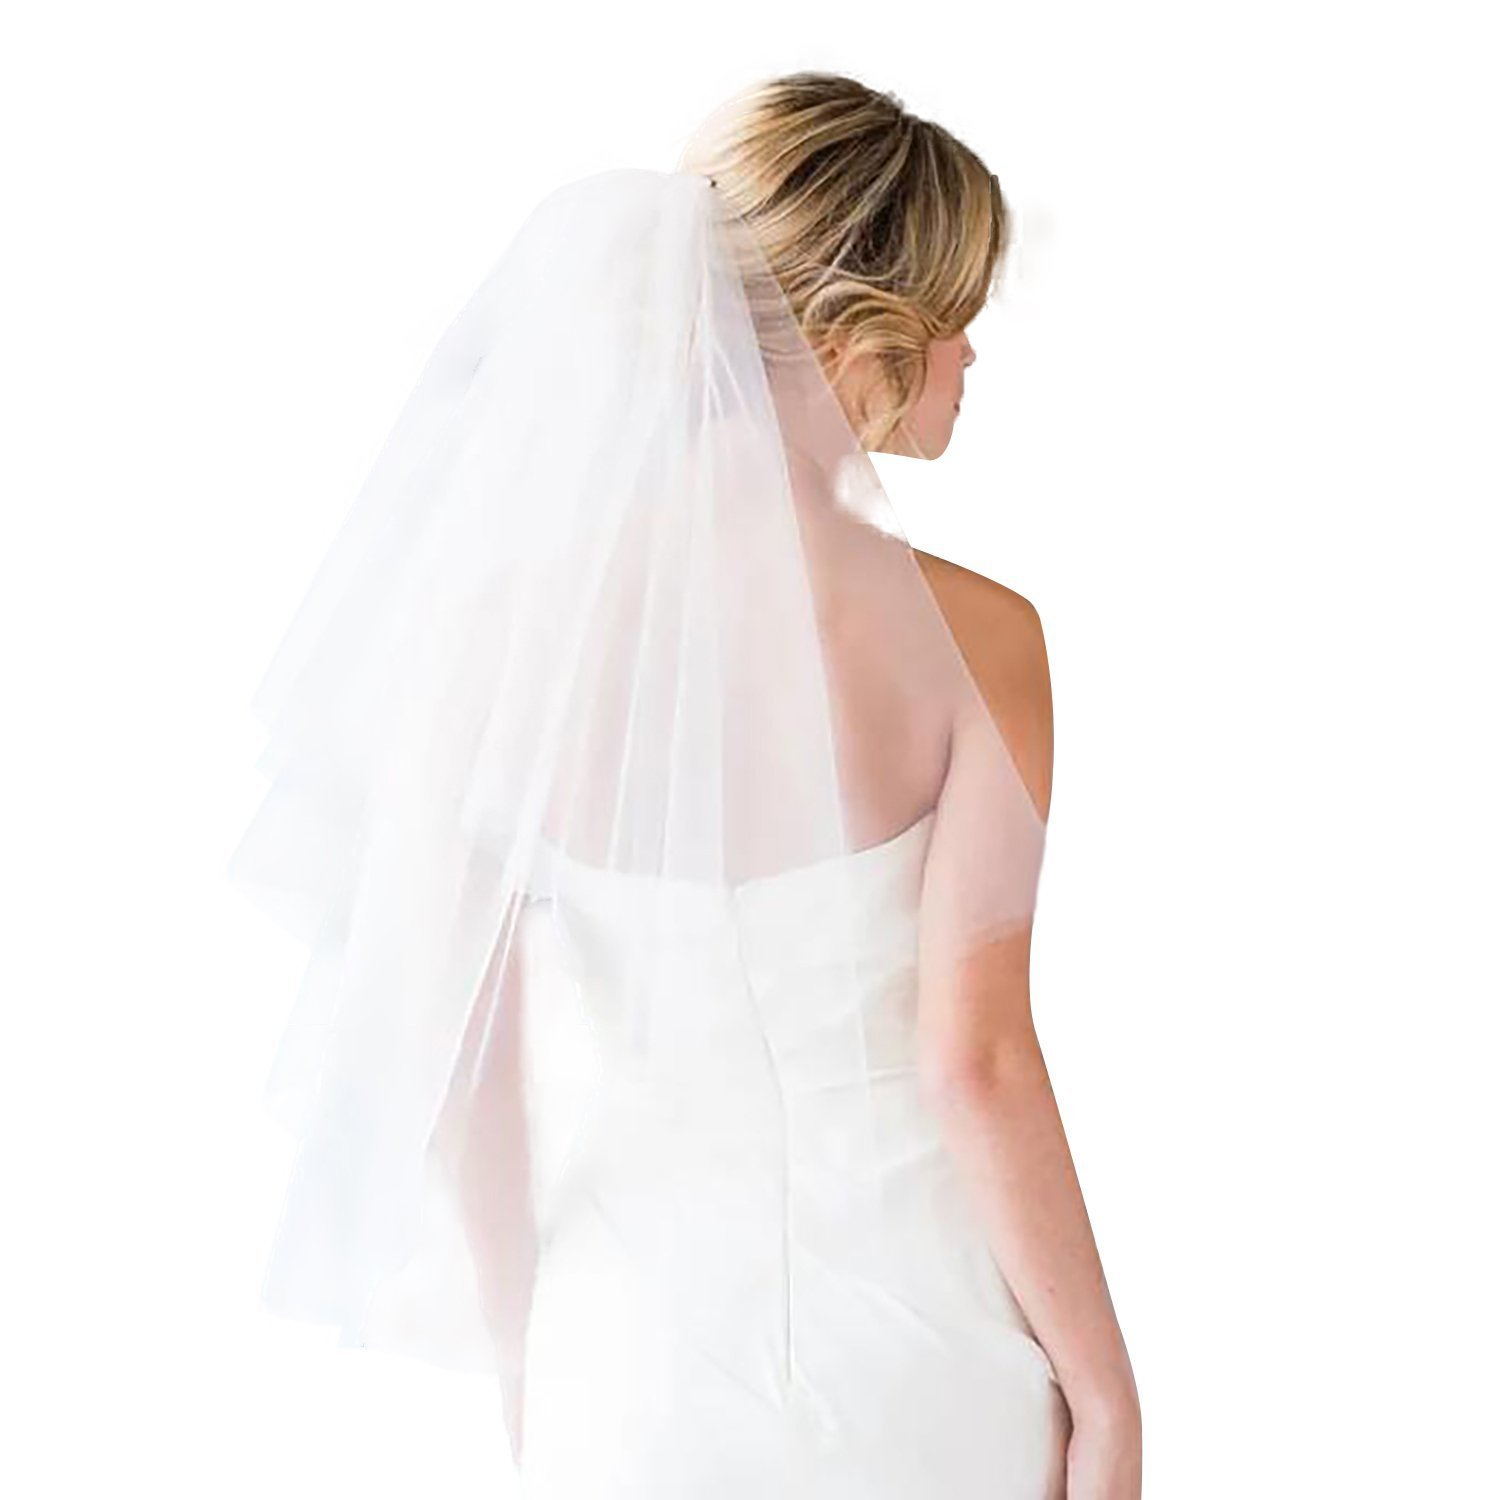 2 Tier Lace Bridal Wedding Veil with Comb White Short Cut Edge Elbow Length